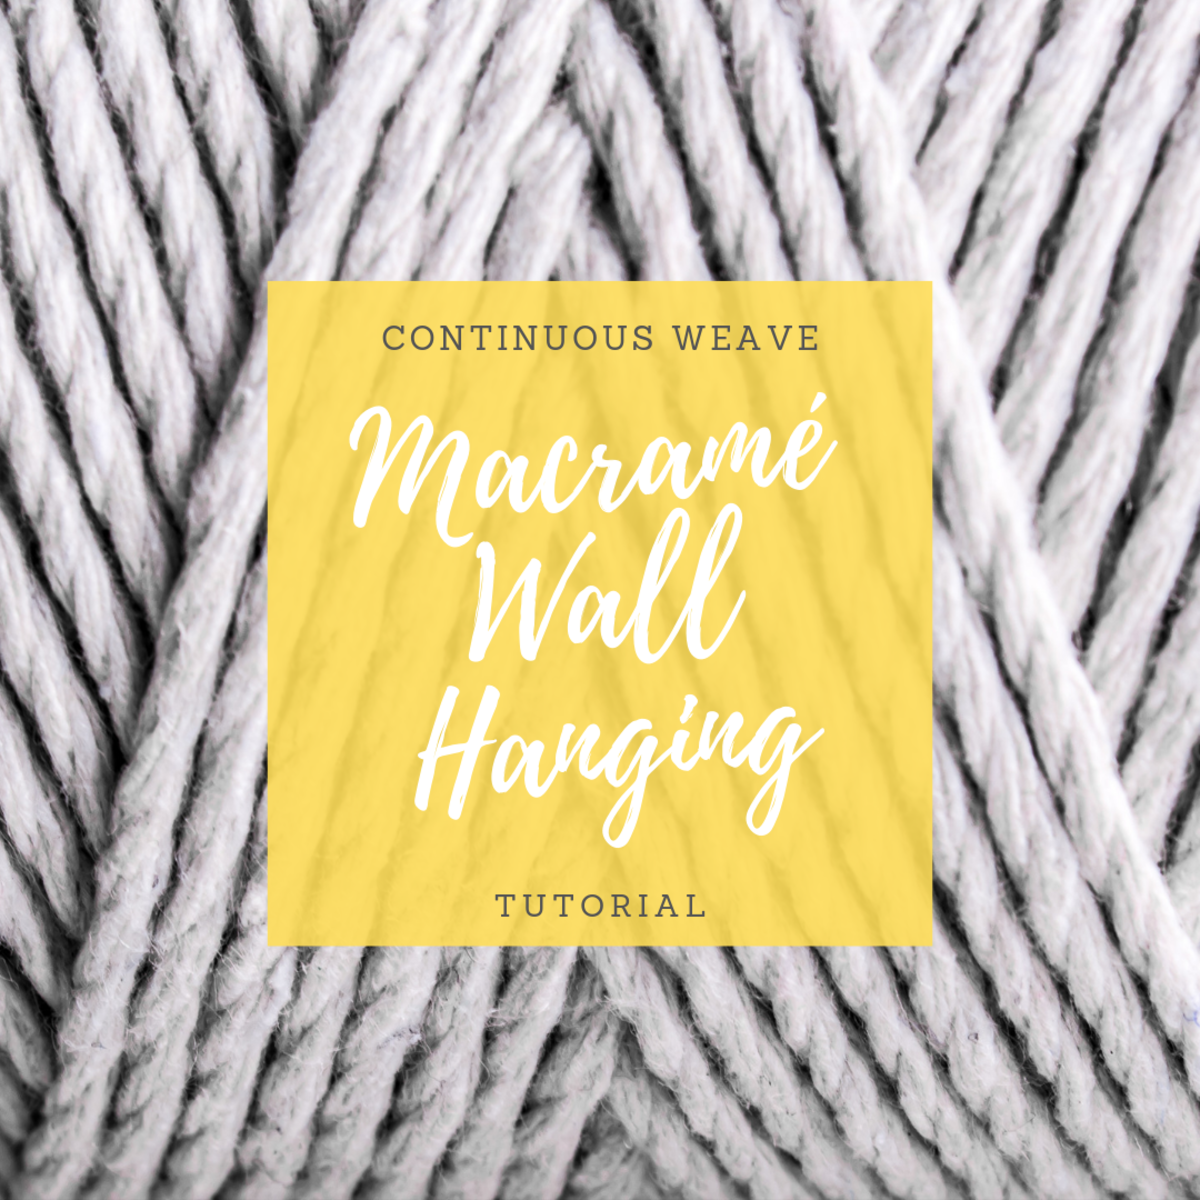 How to Make a Macramé Wall Hanging (With Step-by-Step Photos)